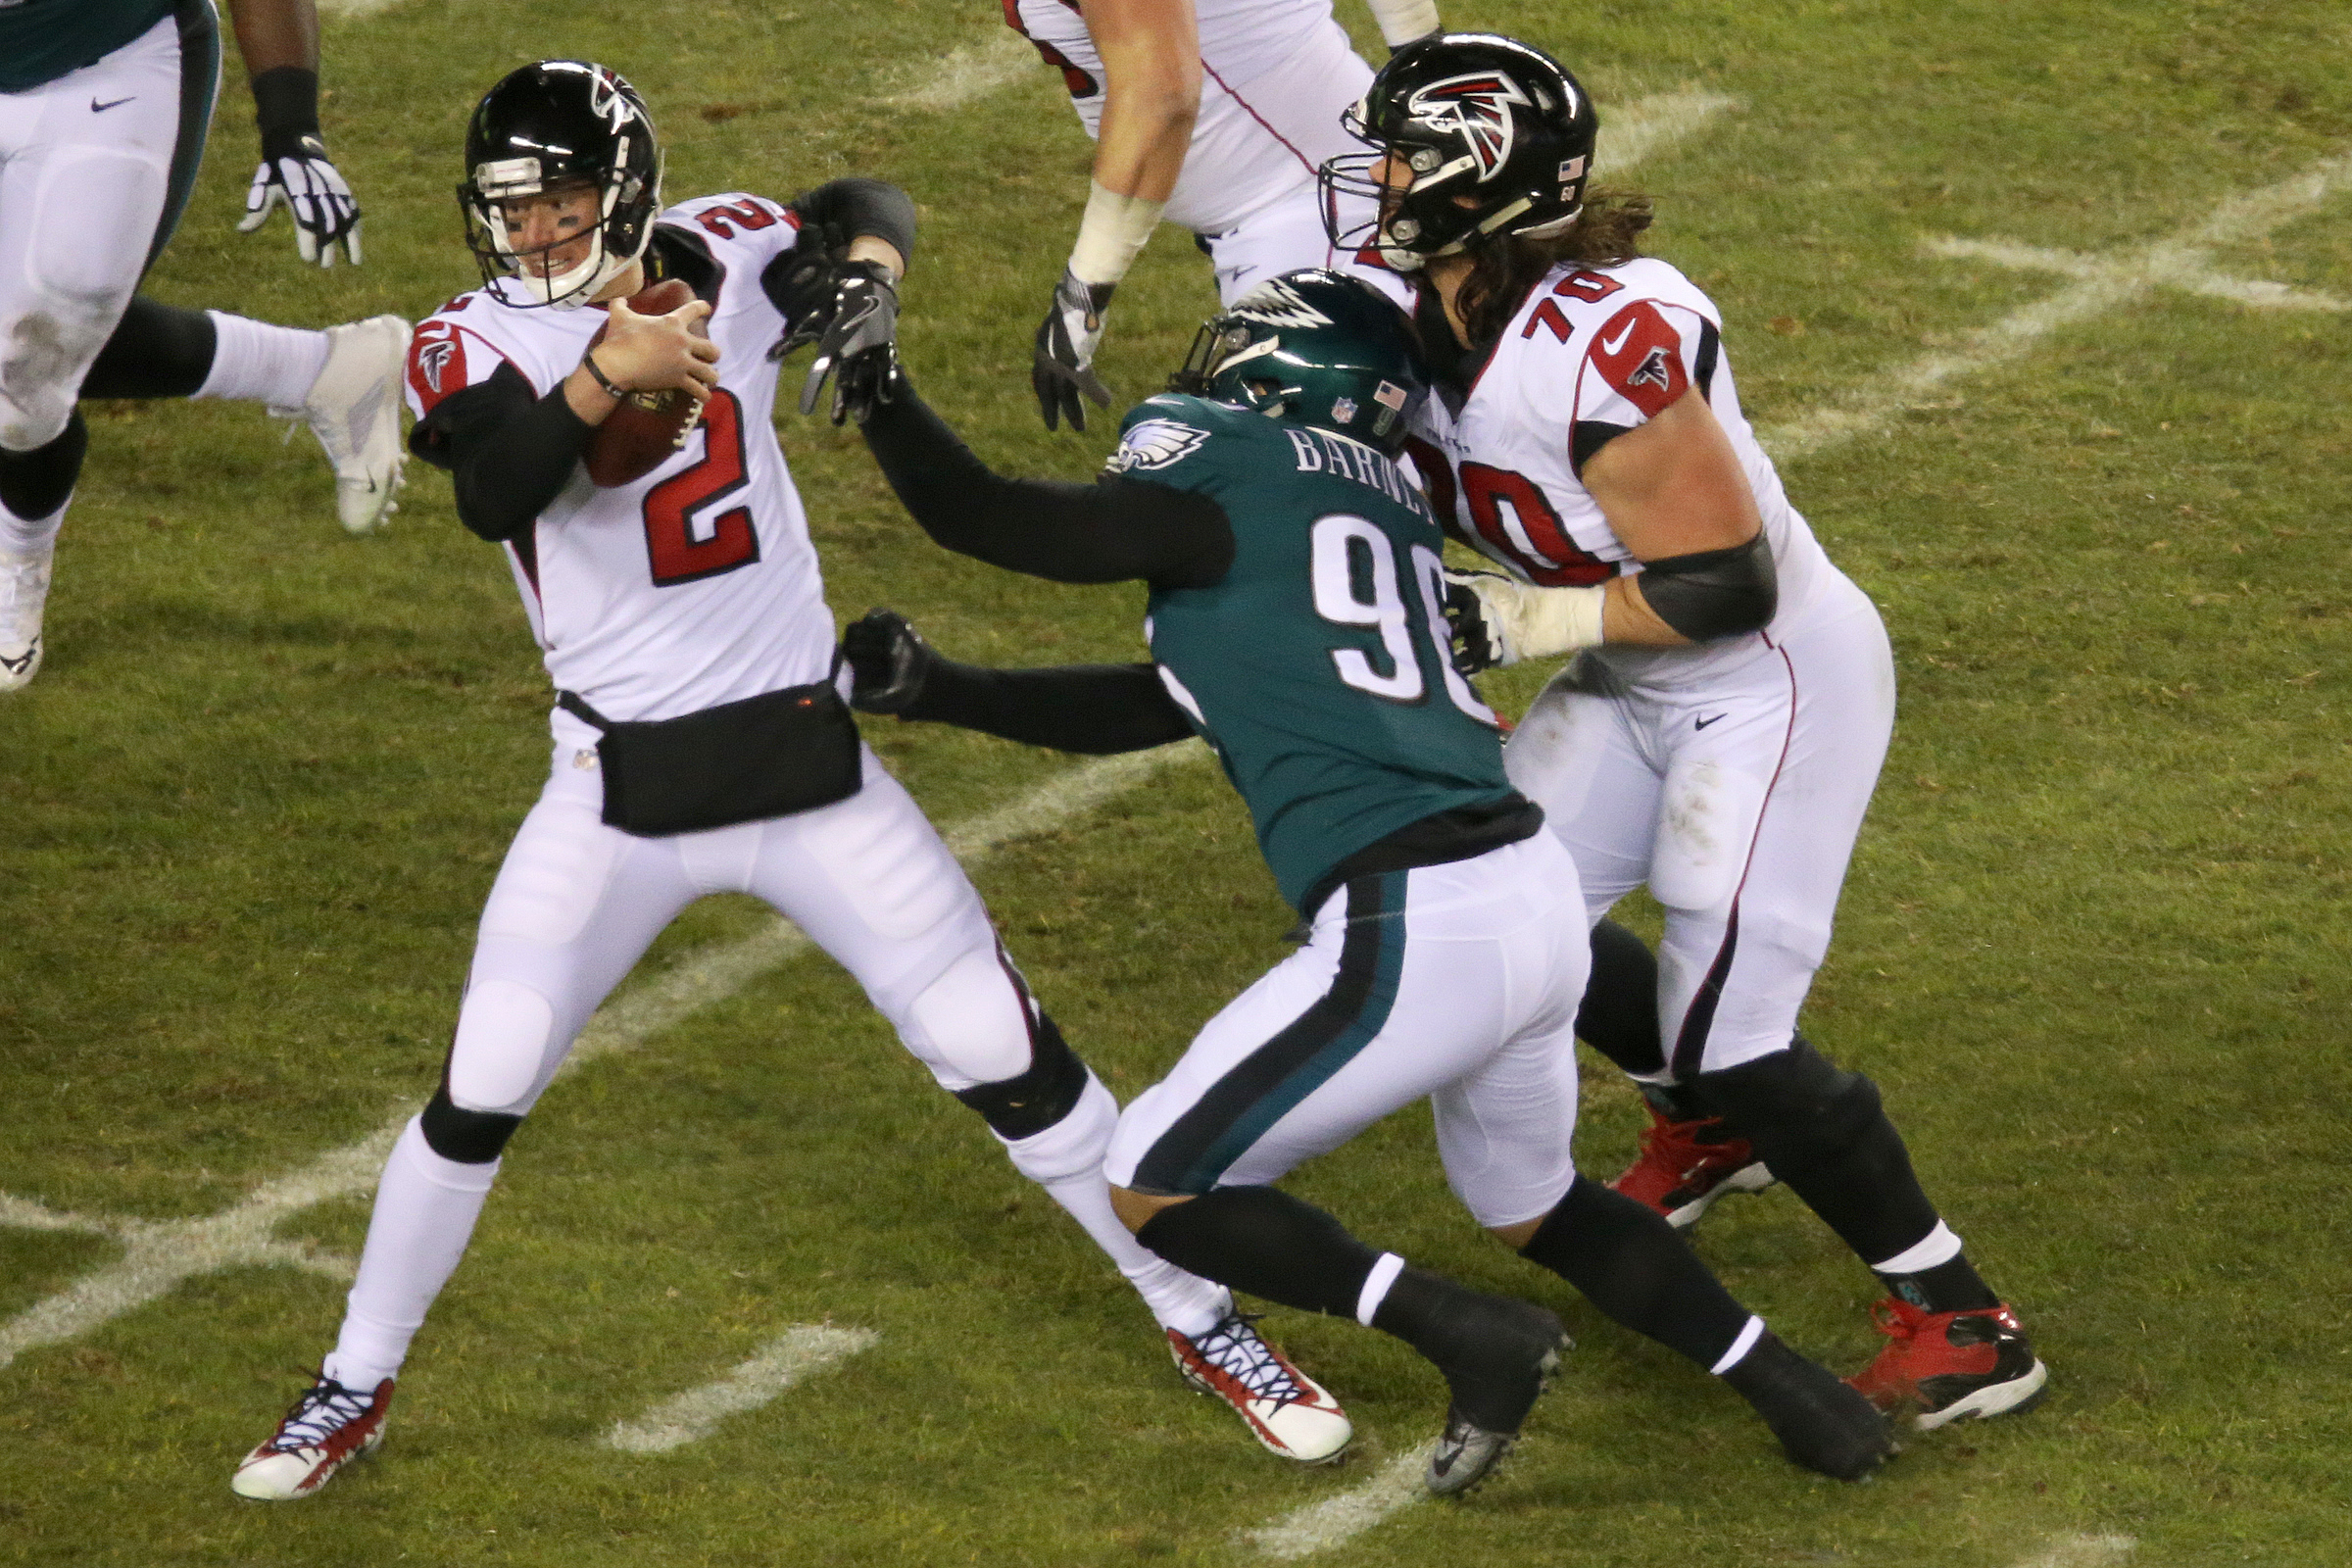 Quarterback Matt Ryan fends off a sack attempt by Derek Barnett during the Eagles´ playoff win over the Falcons in January. Barnett managed just half a sack in the final six games of the season.